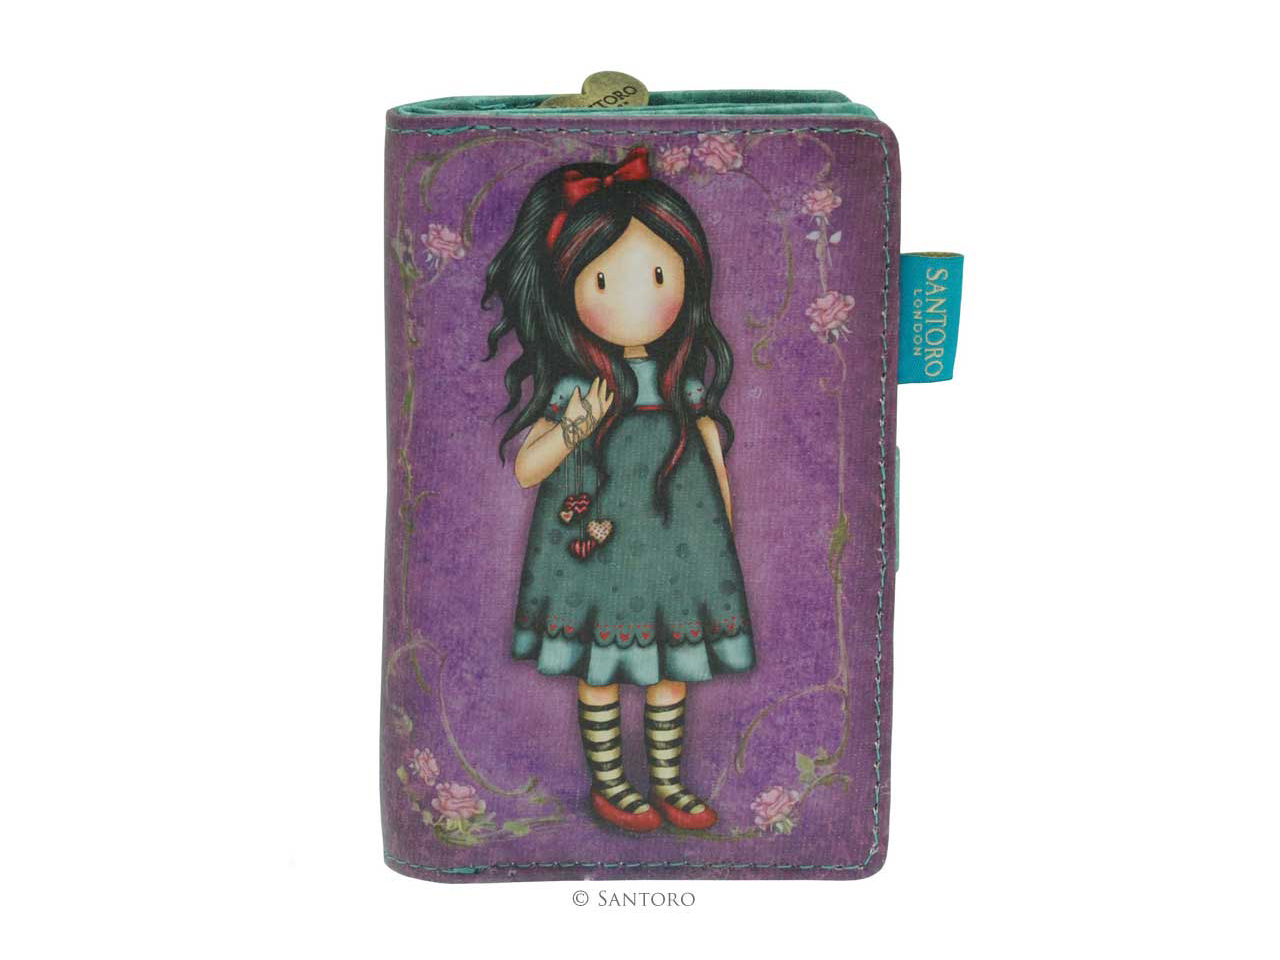 Santoro Gorjuss Small Purse Wallet Cosmetics Case Accessory Case Pulling On Your Heart Strings